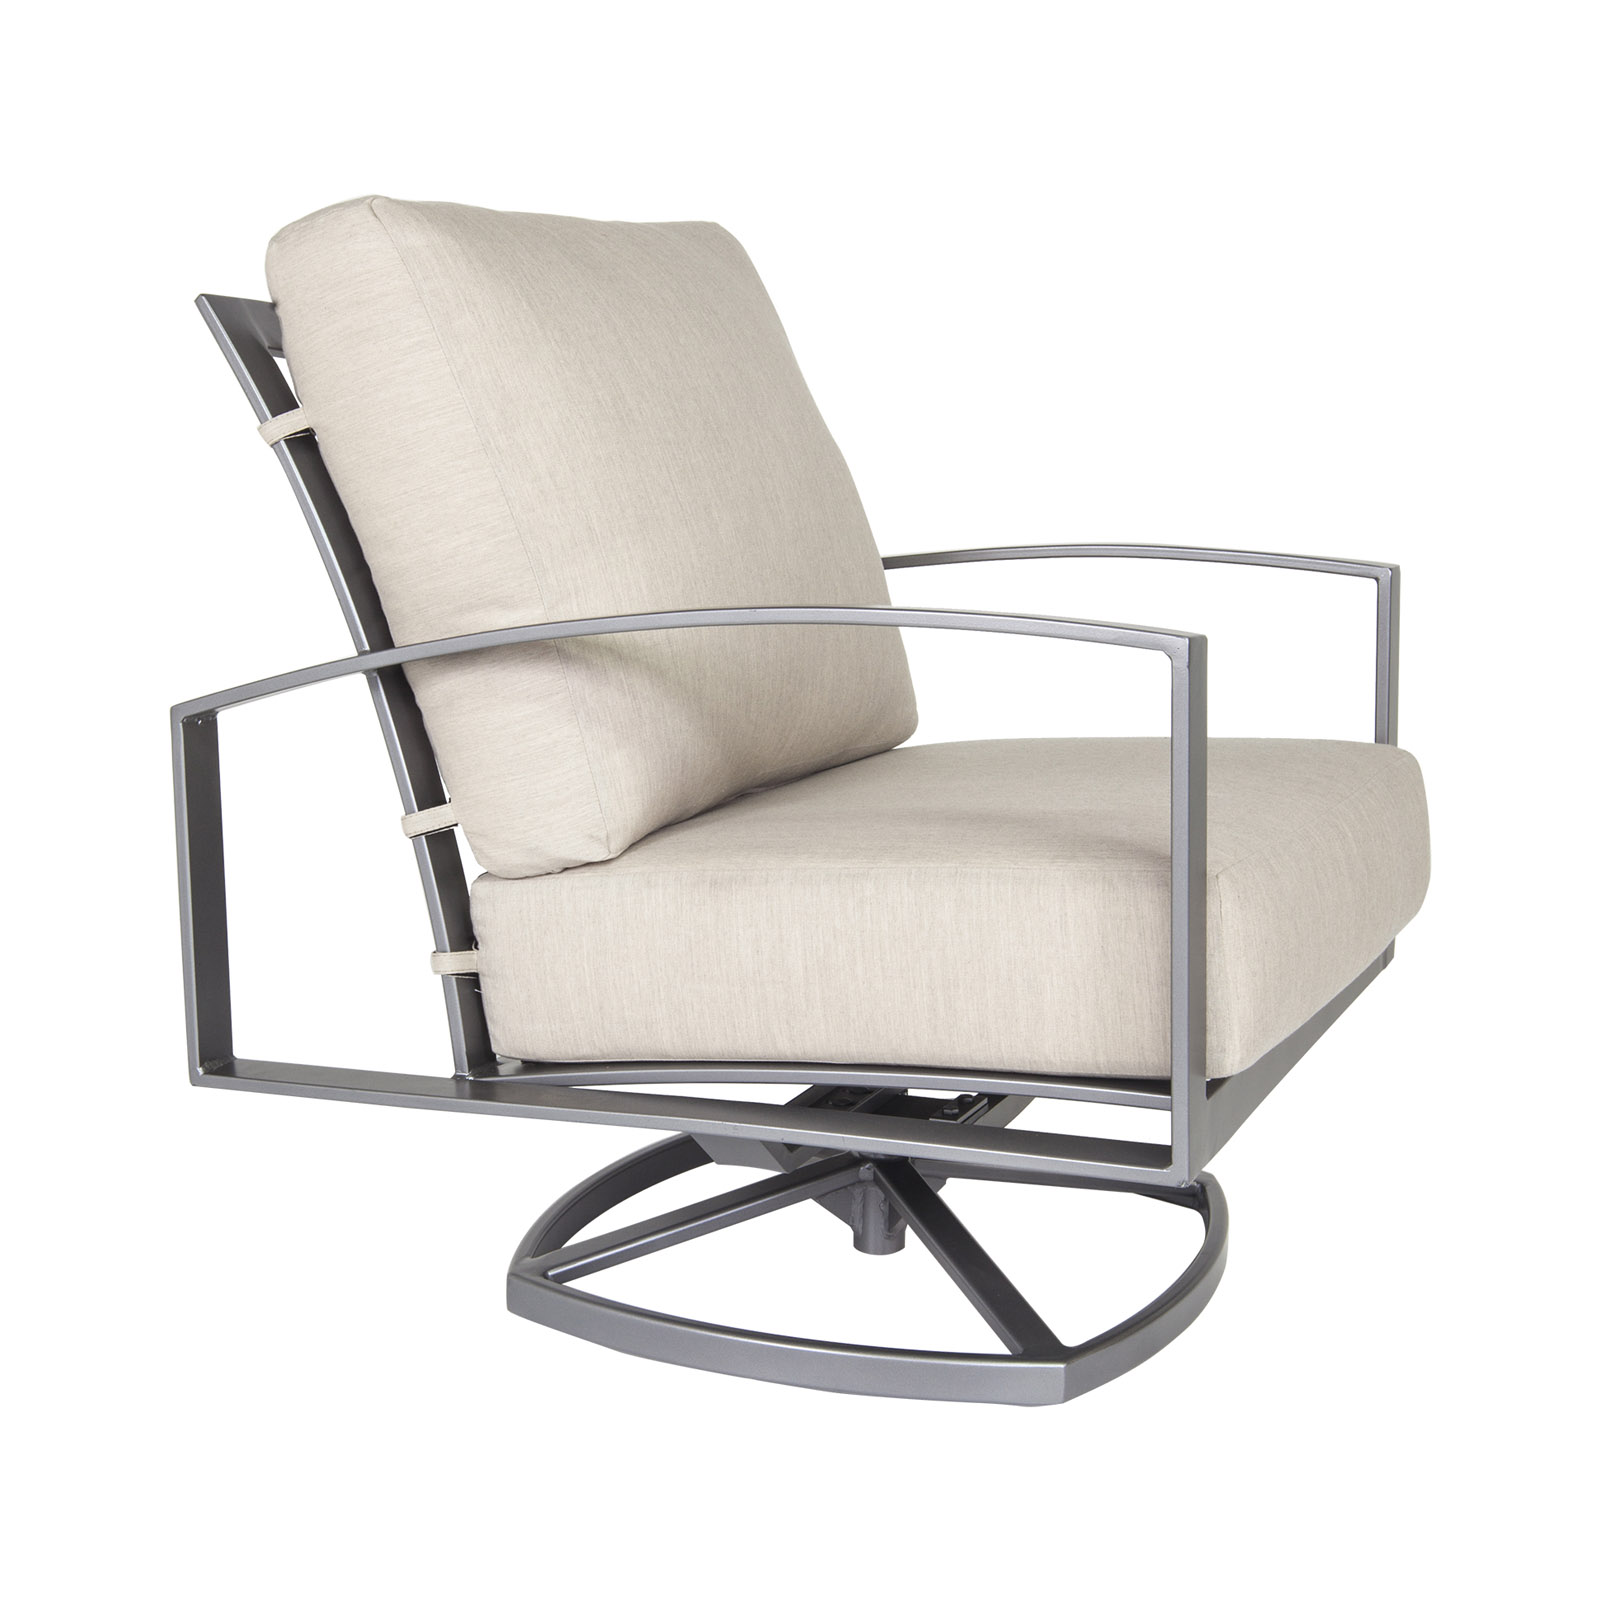 Swivel Rocker Lounge Chair copy.jpg